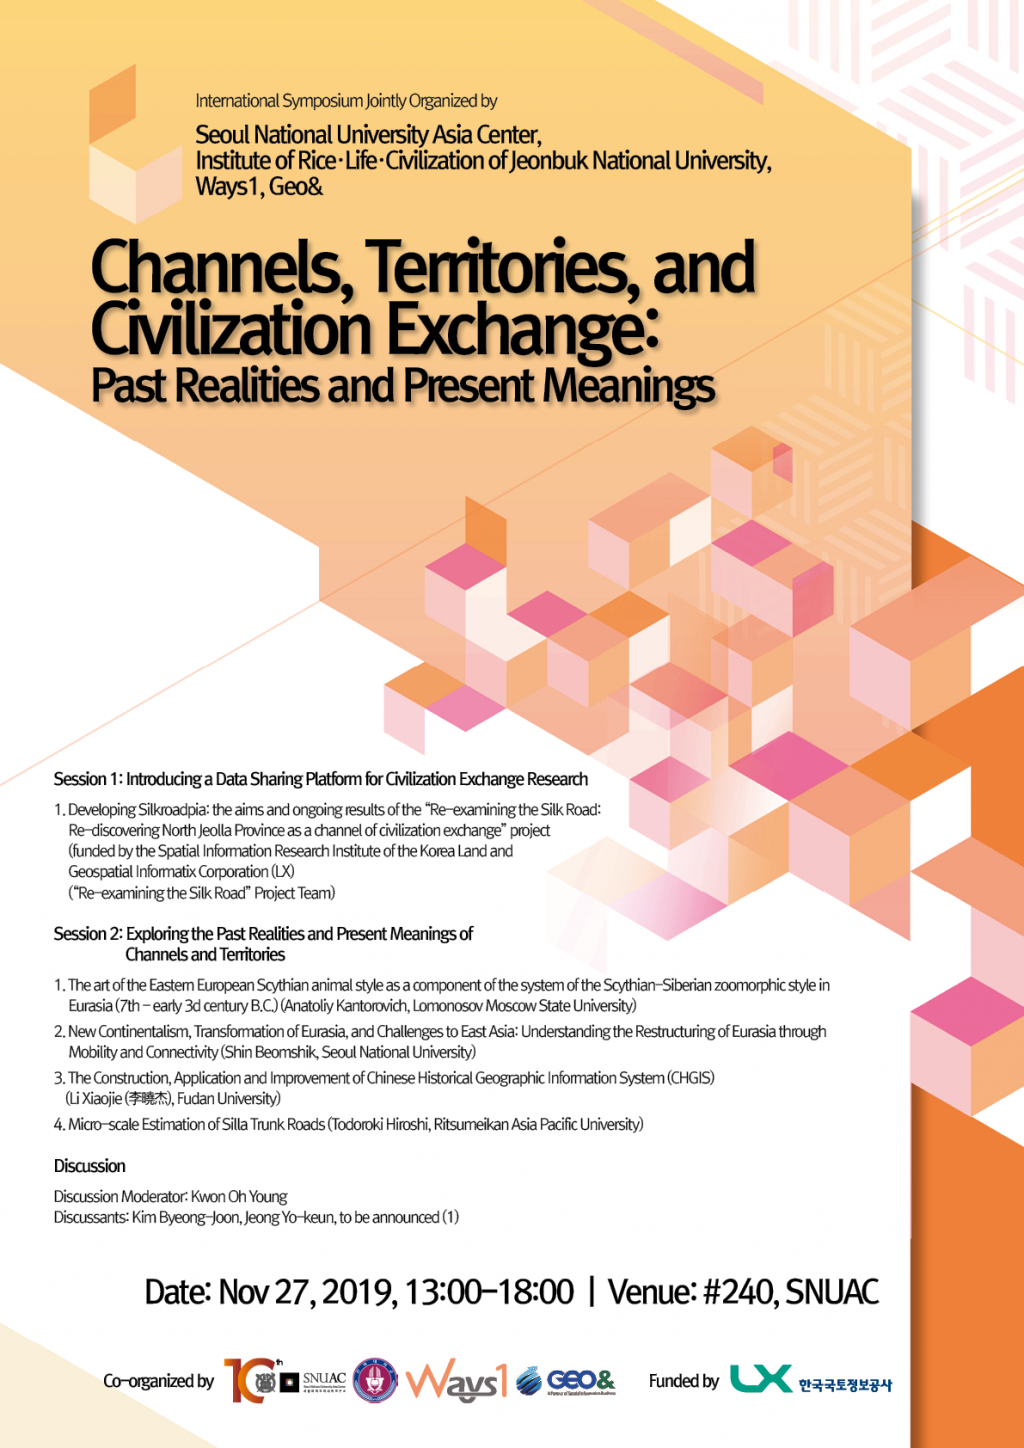 Channels, Territories, and Civilization Exchange: Past Realities and Present Meanings